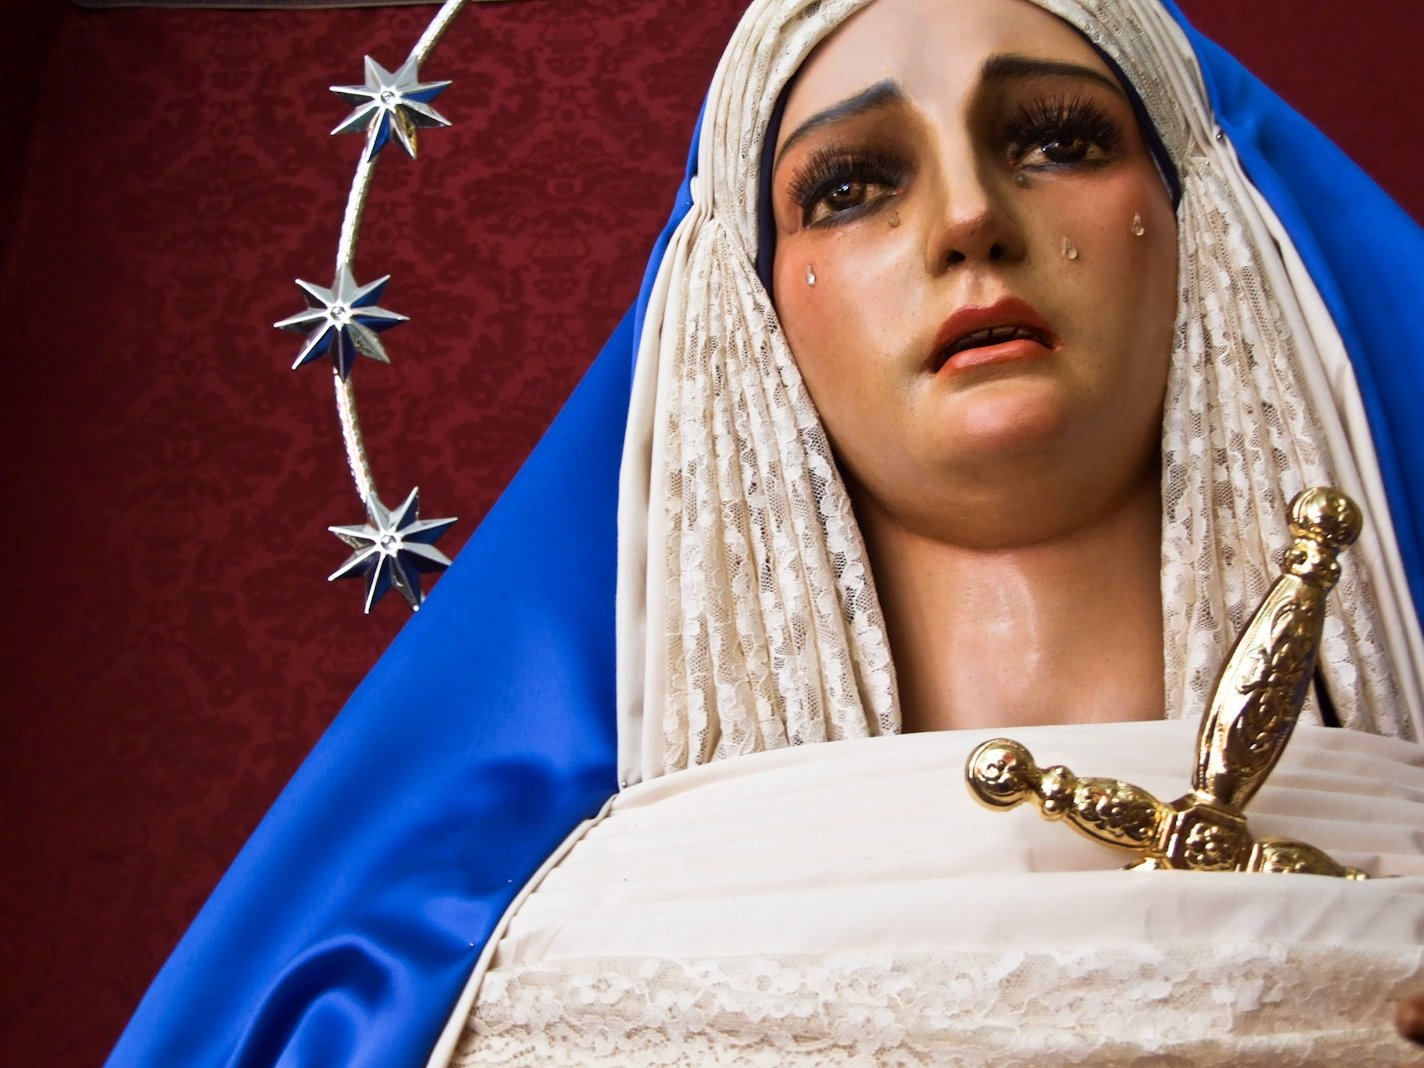 Figure of Virgin Mary. Image taken in Seville, Spain.